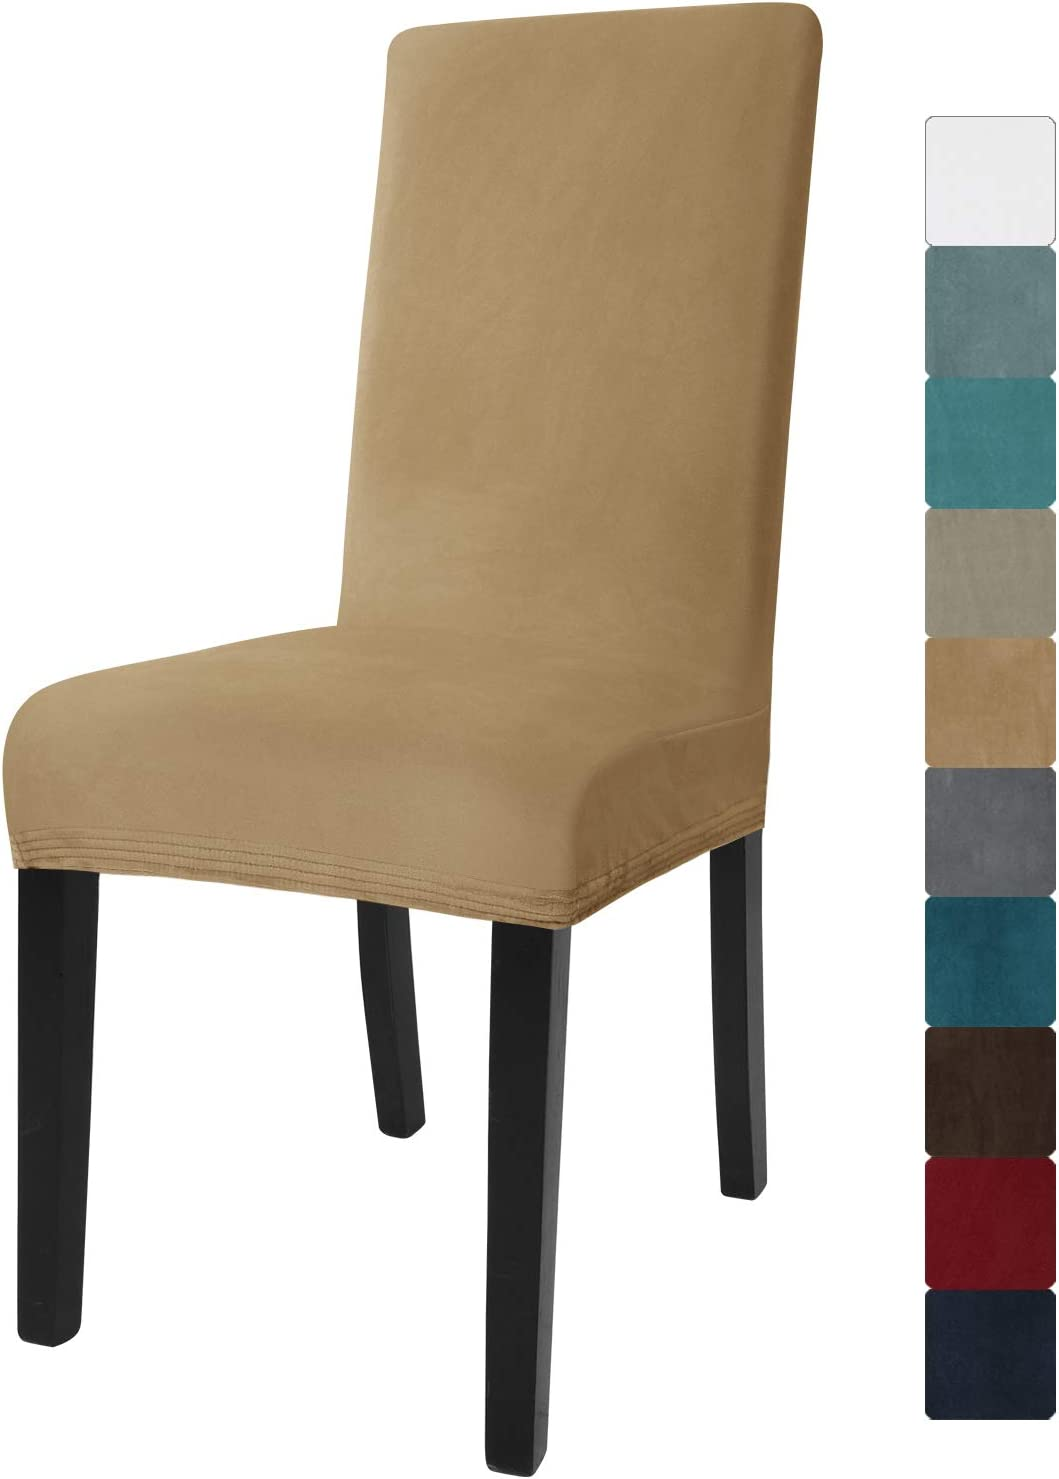 JIVINER Velvet Dining Chair Sacramento Mall High Stretch Outlet ☆ Free Shipping Slipcover Covers